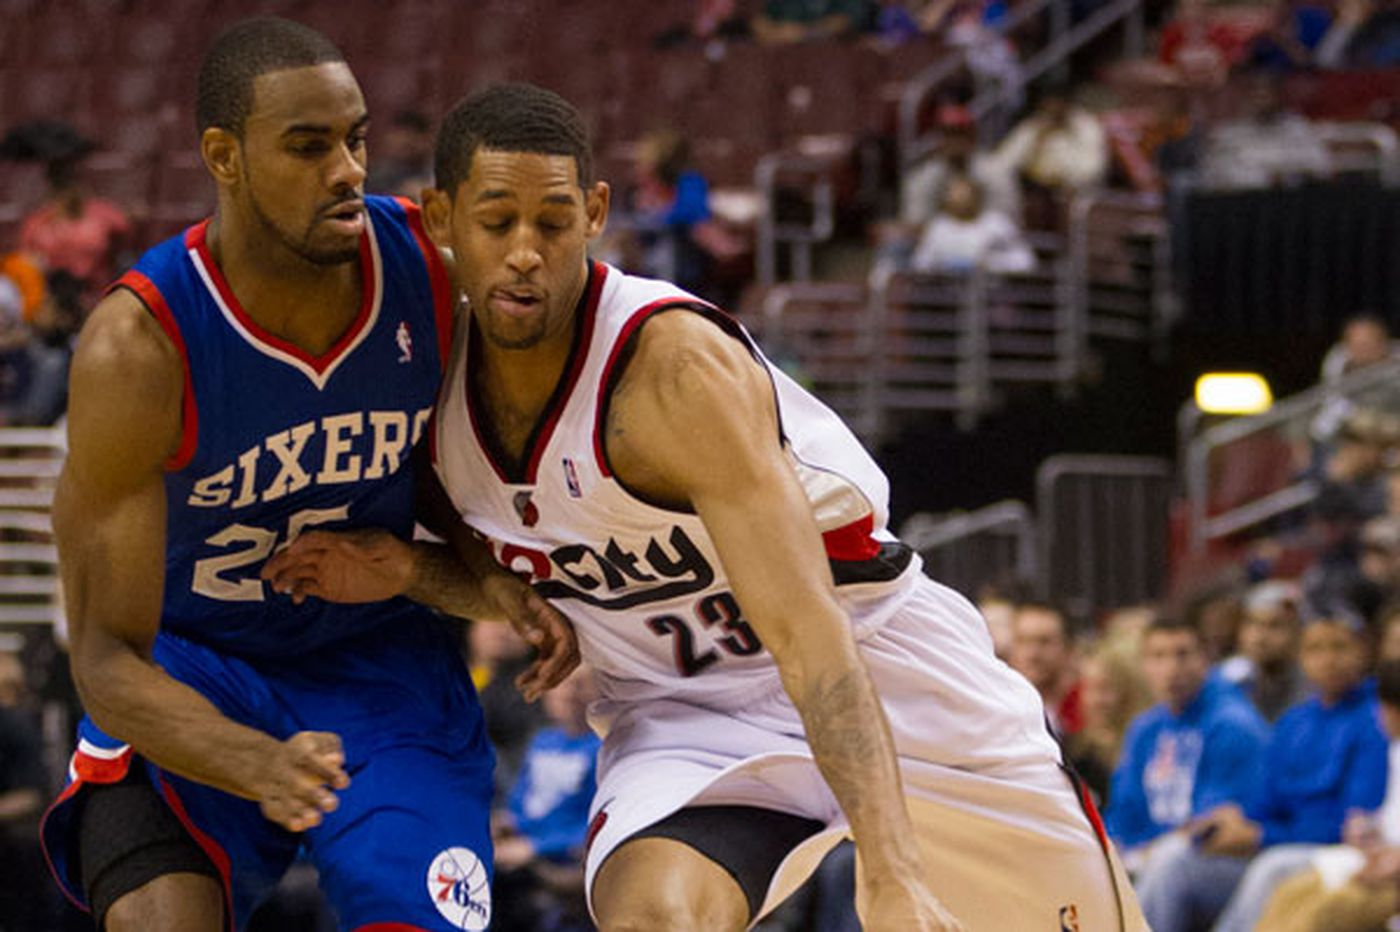 Sixers look to shore up perimeter defense